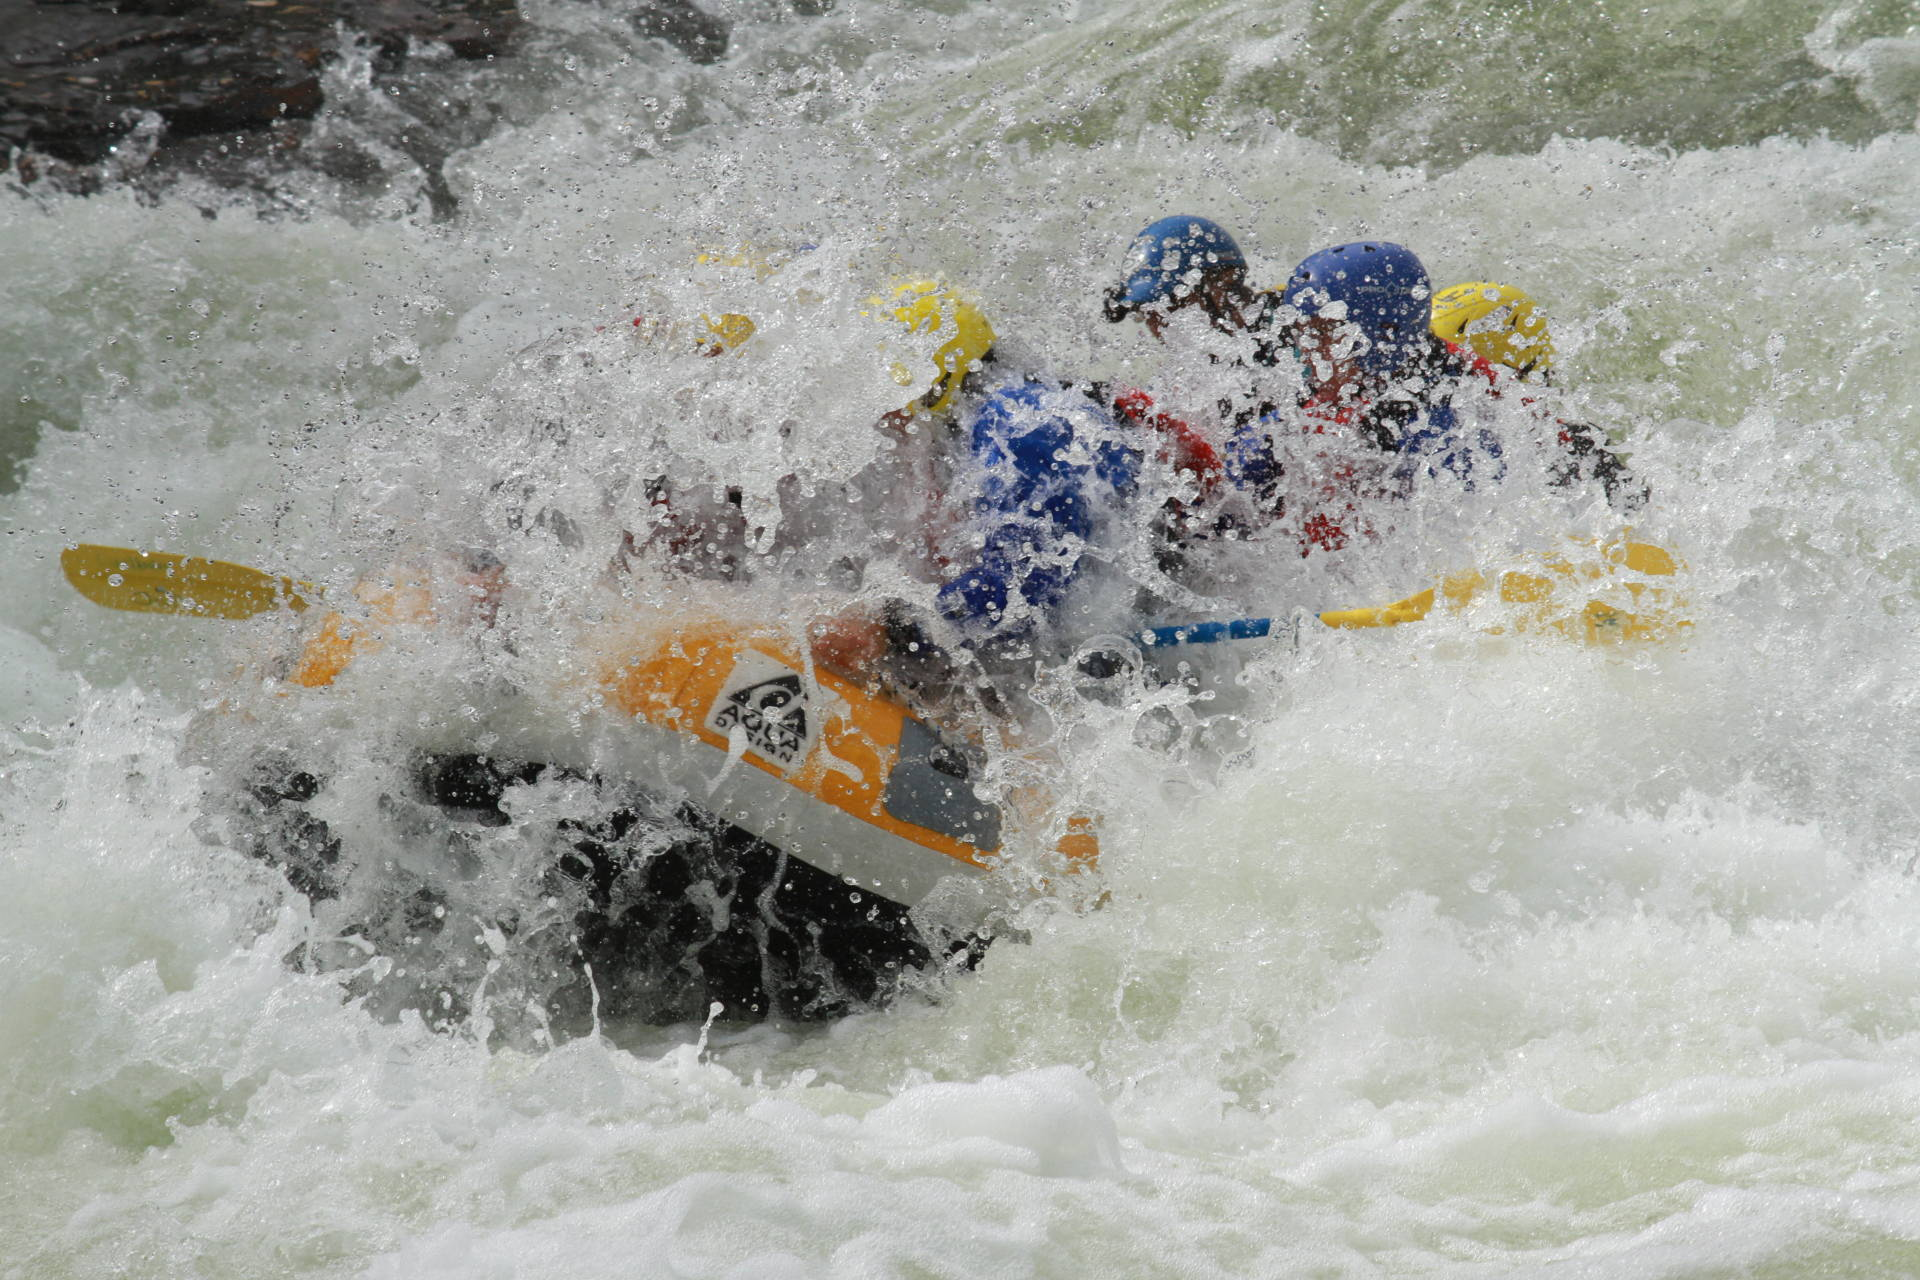 Advanced rafting in Vålån, Åre